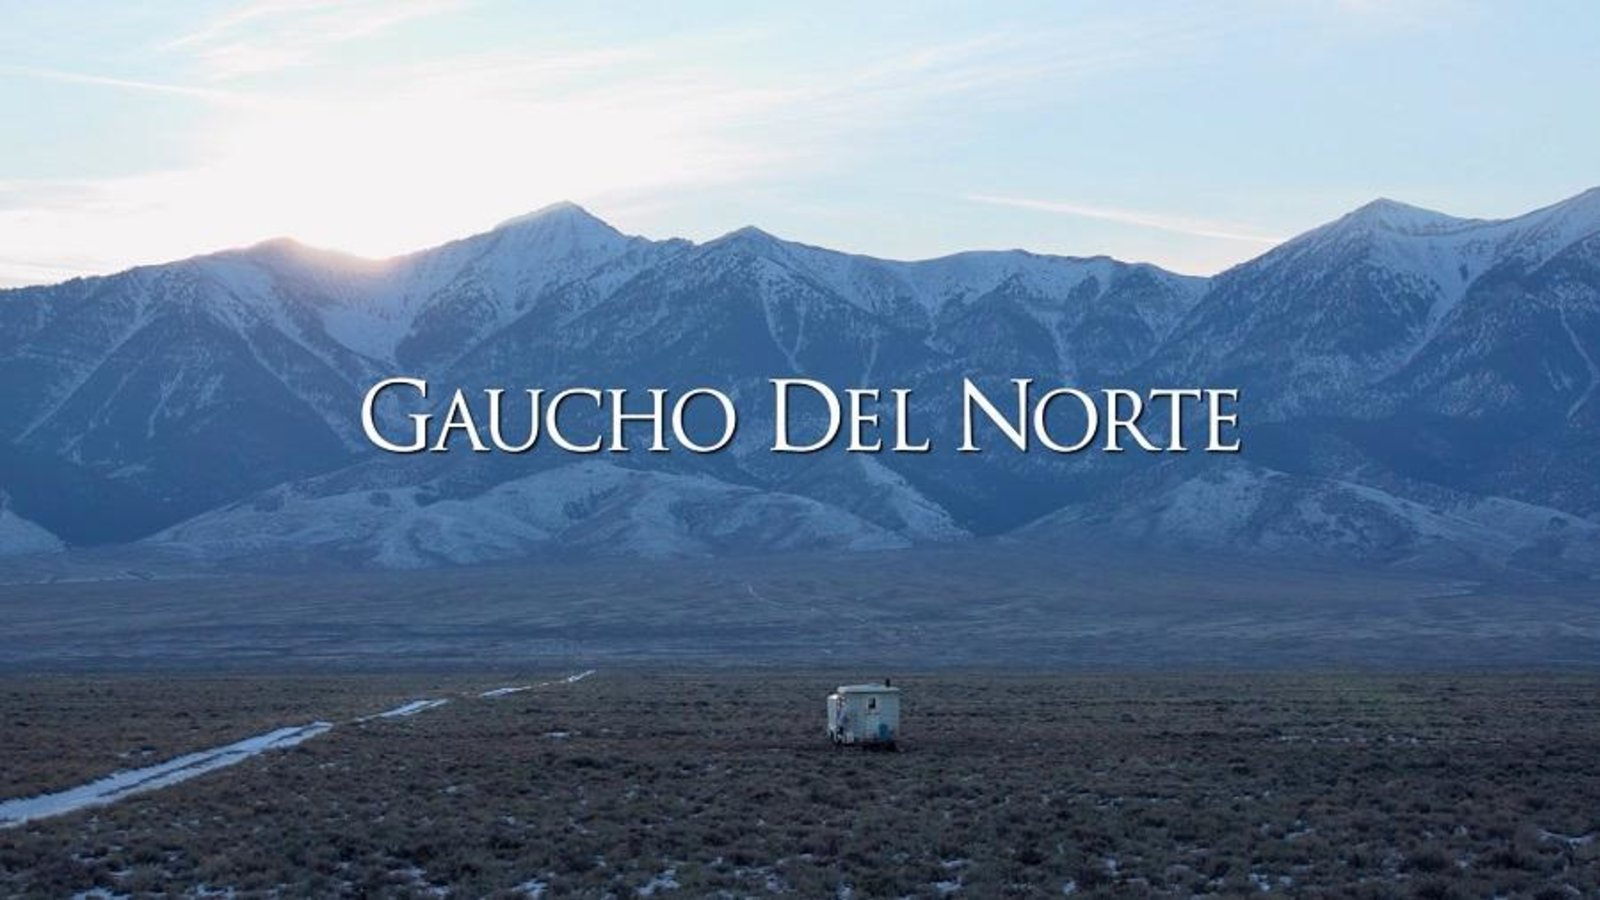 Gaucho del Norte - A Chilean Sheepherder Working in Idaho